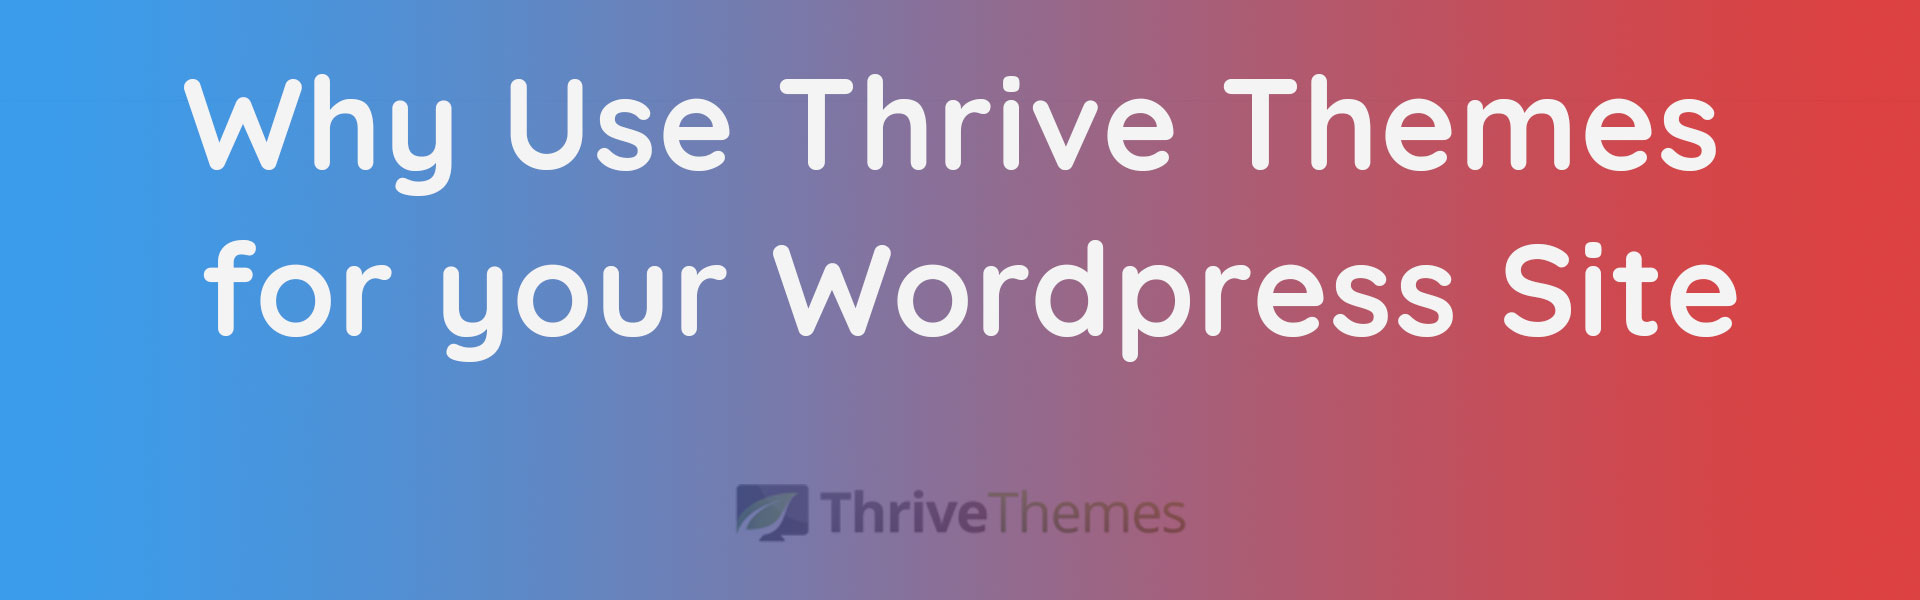 Why use Thrive Themes with your Wordpress site